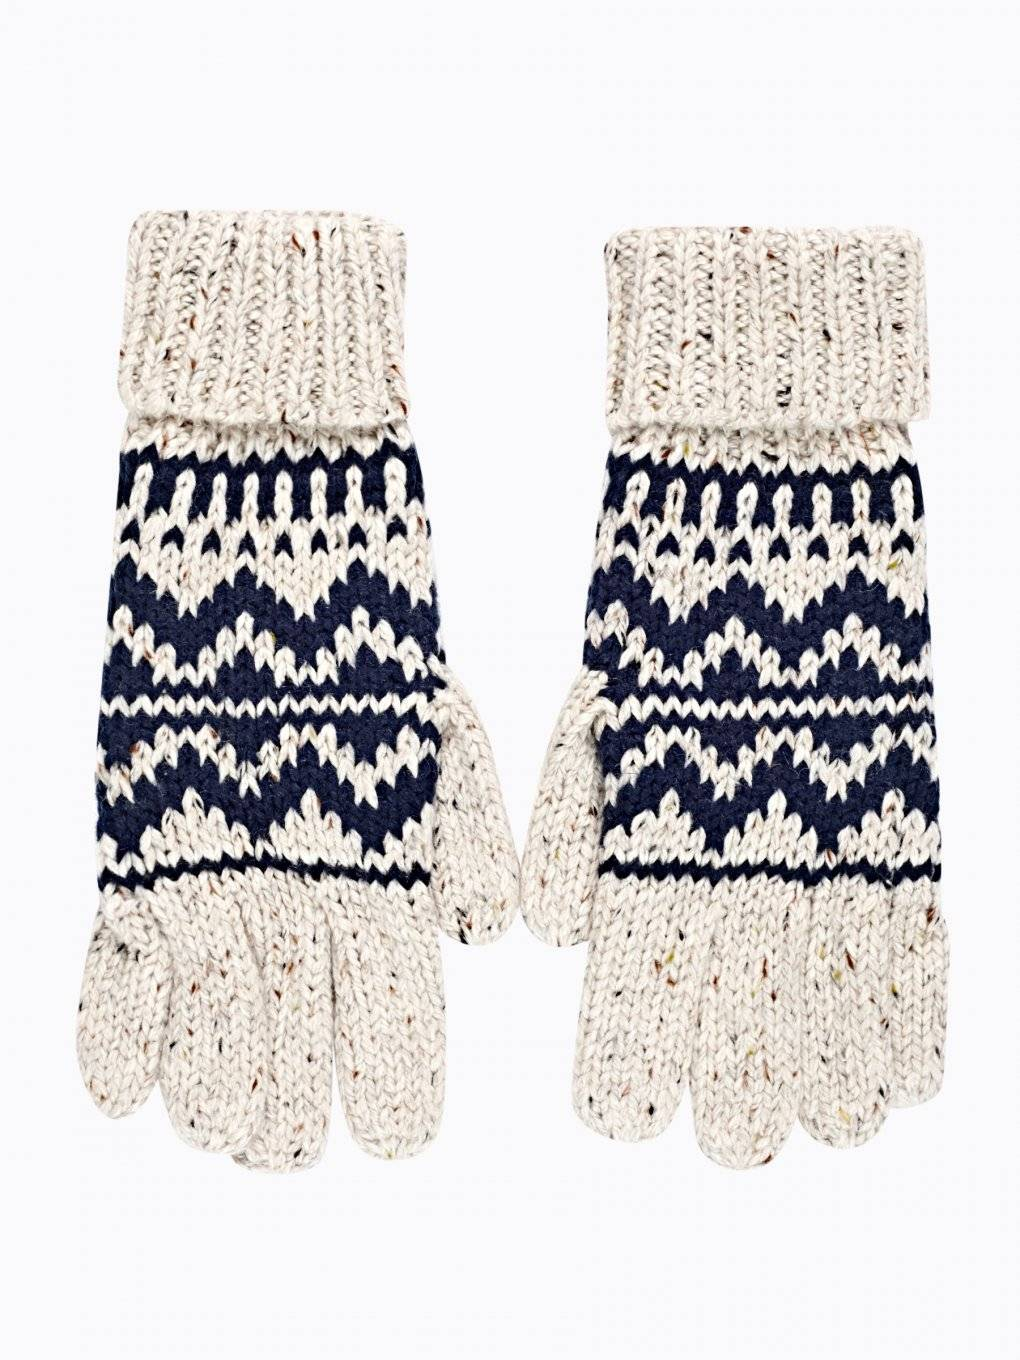 PATTERNED GLOVES